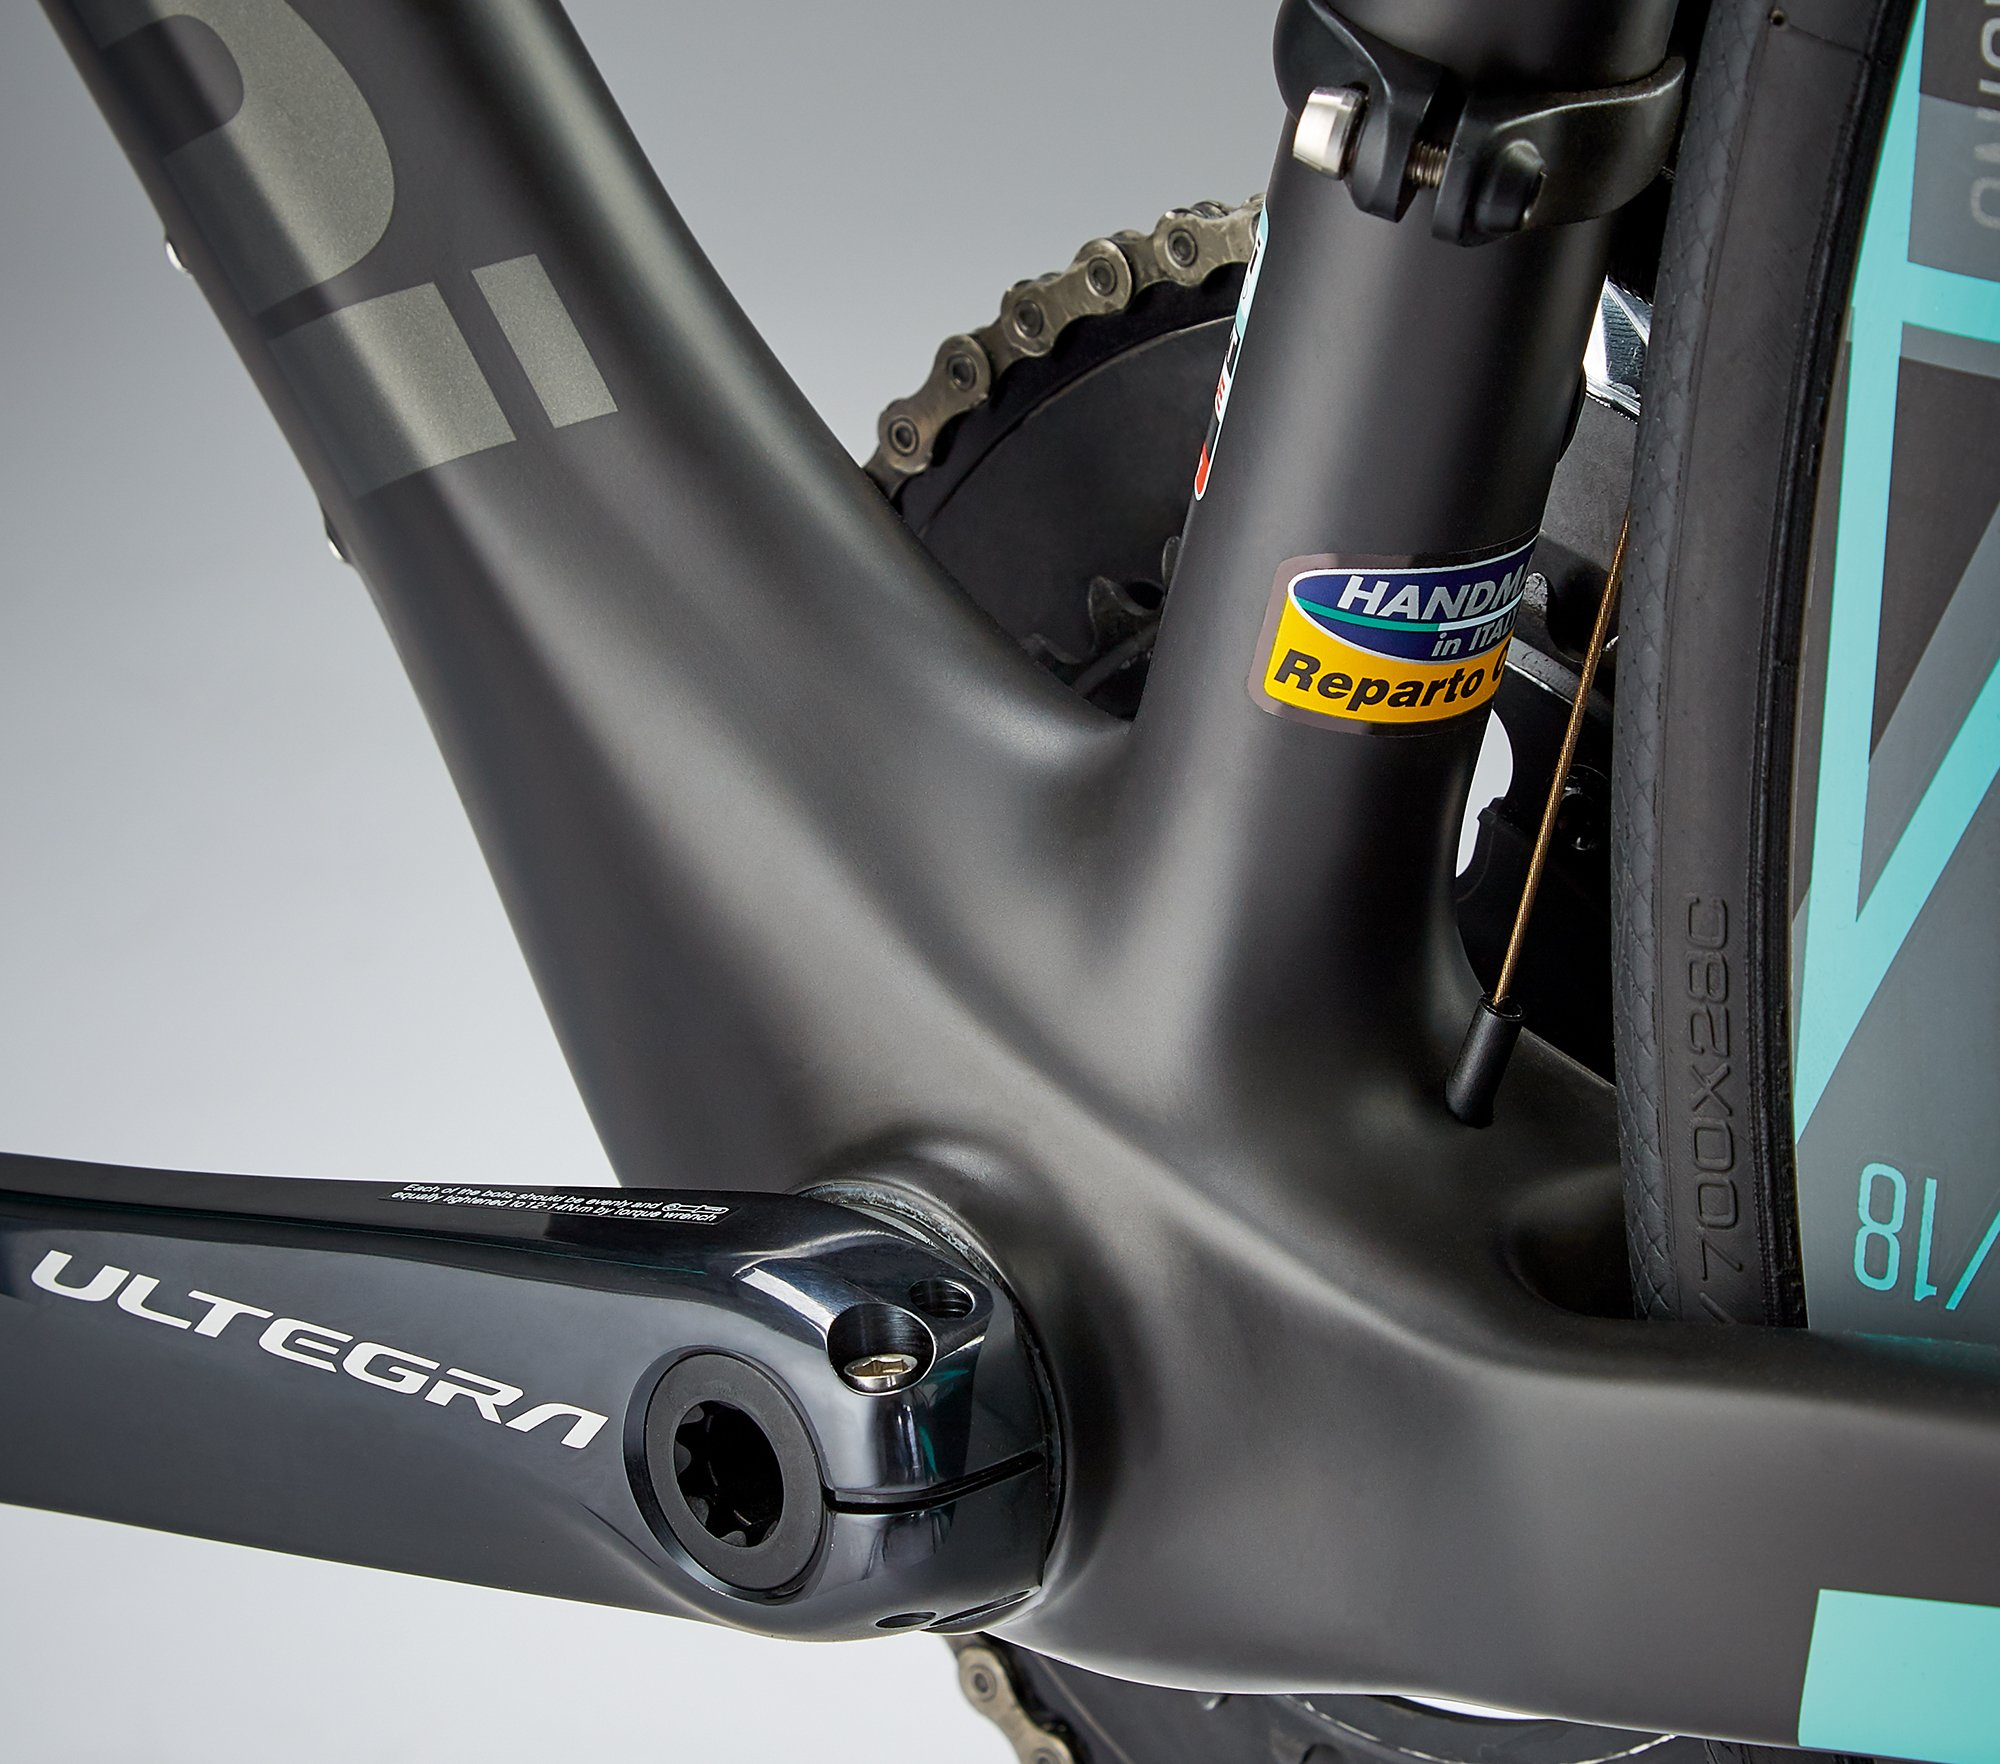 Bianchi Oltre XR3 Disc review pictures | Cyclist